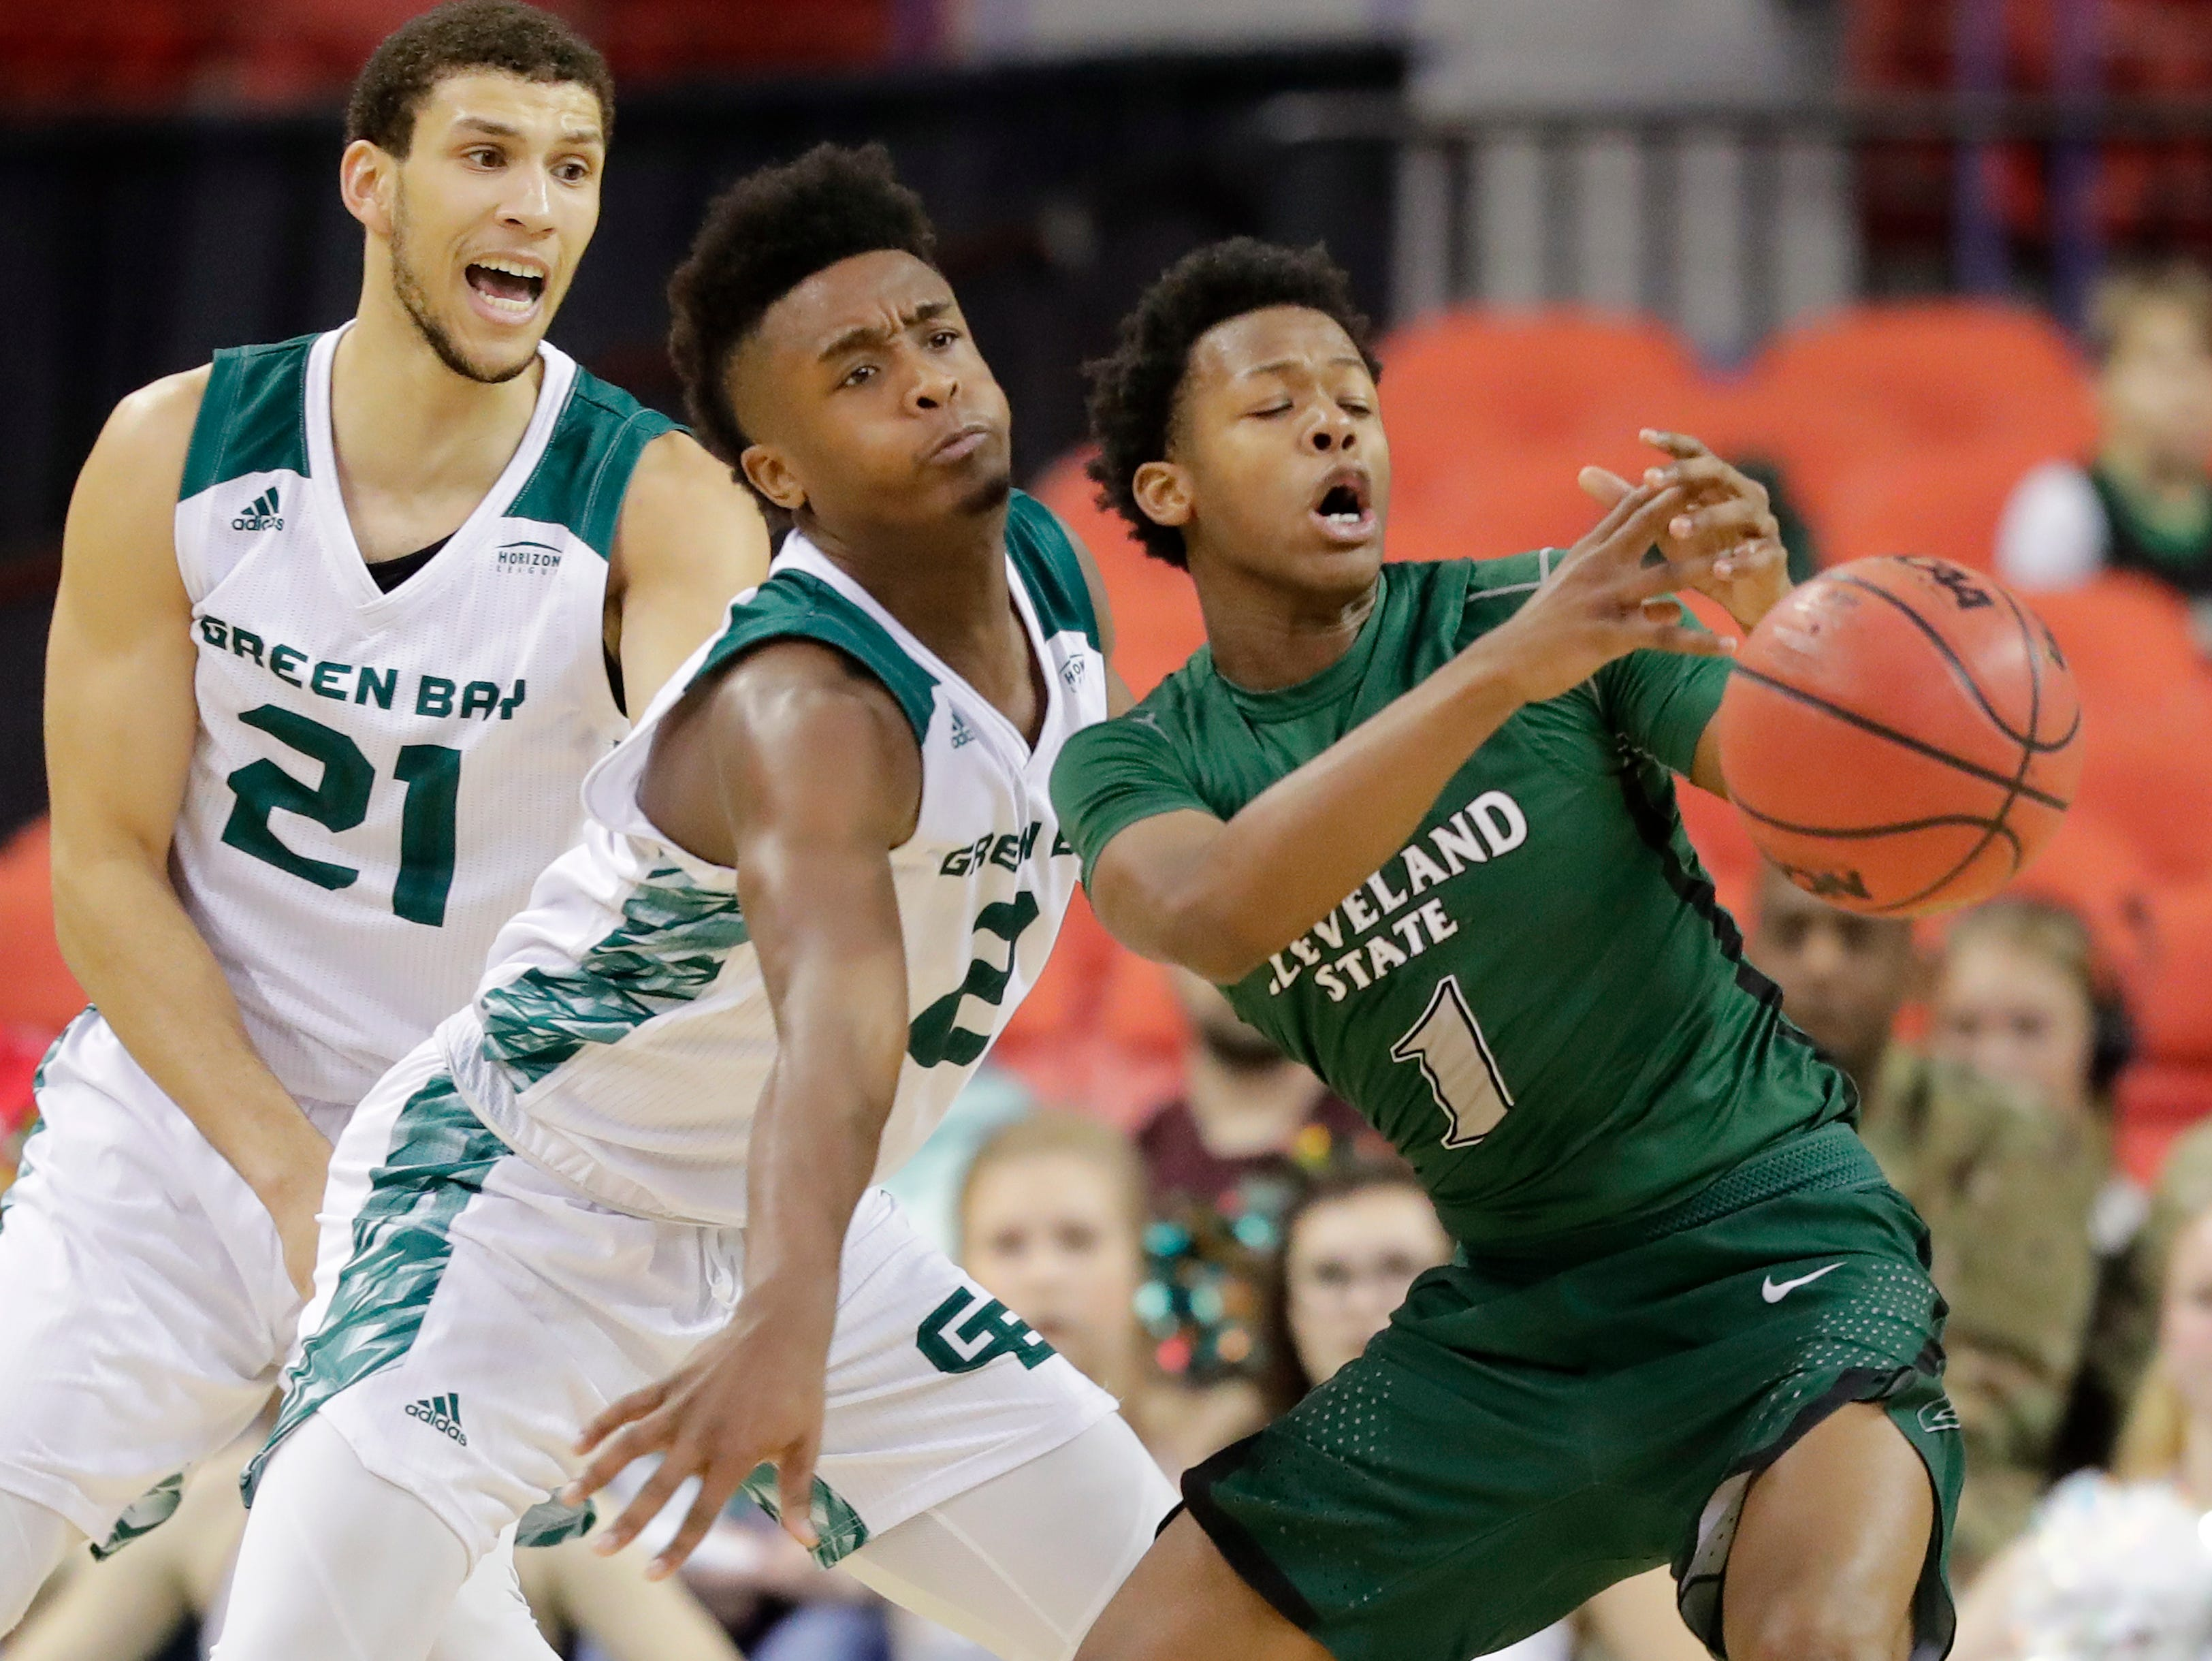 Green Bay Phoenix guard PJ Pipes (2) knocks th ball away from Cleveland State Vikings guard Tyree Appleby (1) in a Horizon League basketball game at the Resch Center on Saturday, January 5, 2019 in Green Bay, Wis.